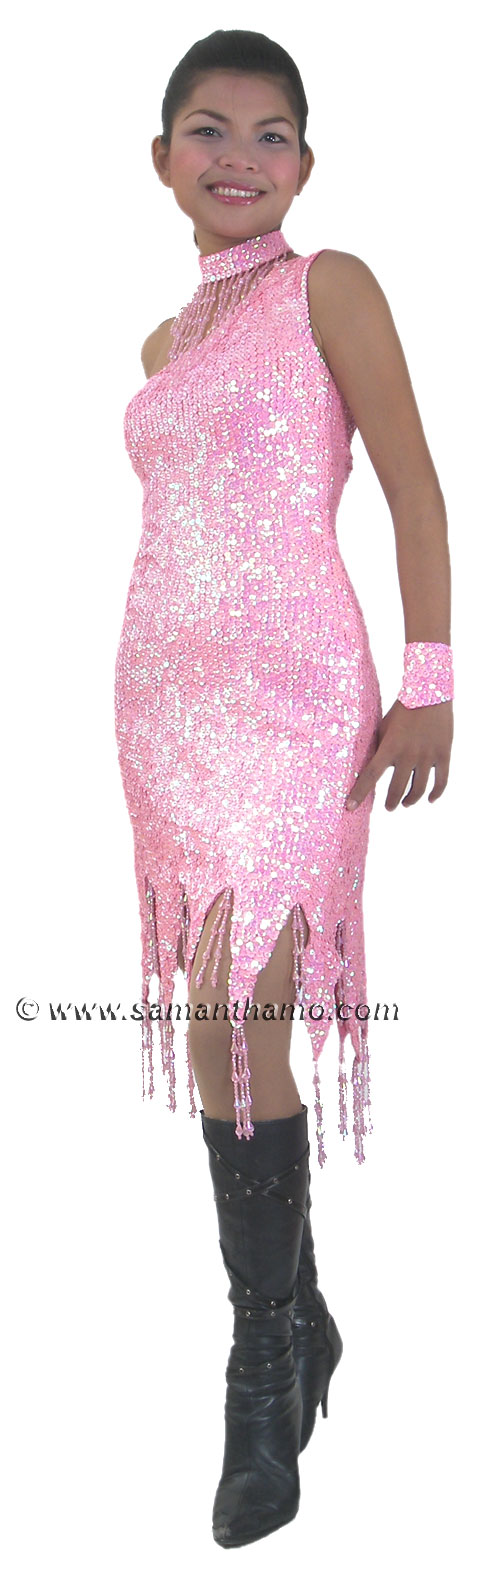 Sequin-Dresses/RM542-diva%27s-dance-dress.jpg